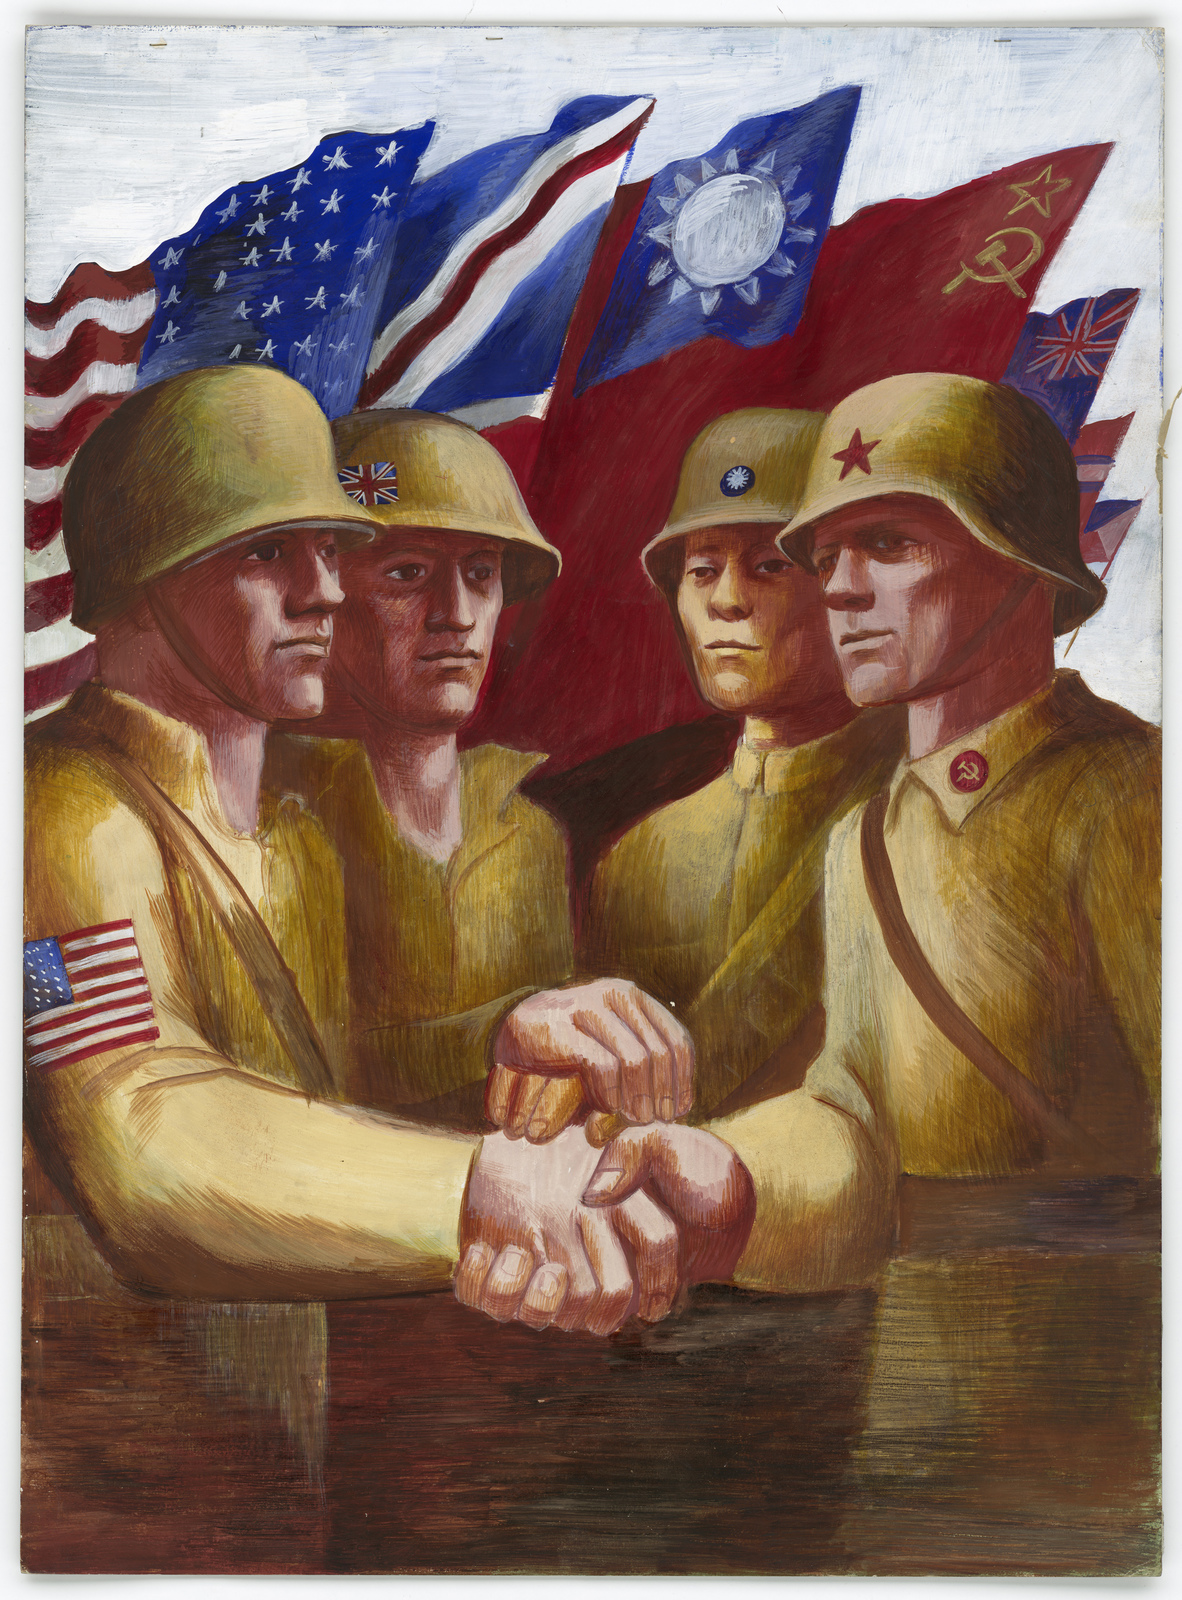 [Four soldiers shaking hands with the American, British, Chinese, and Russian flags in the background.]